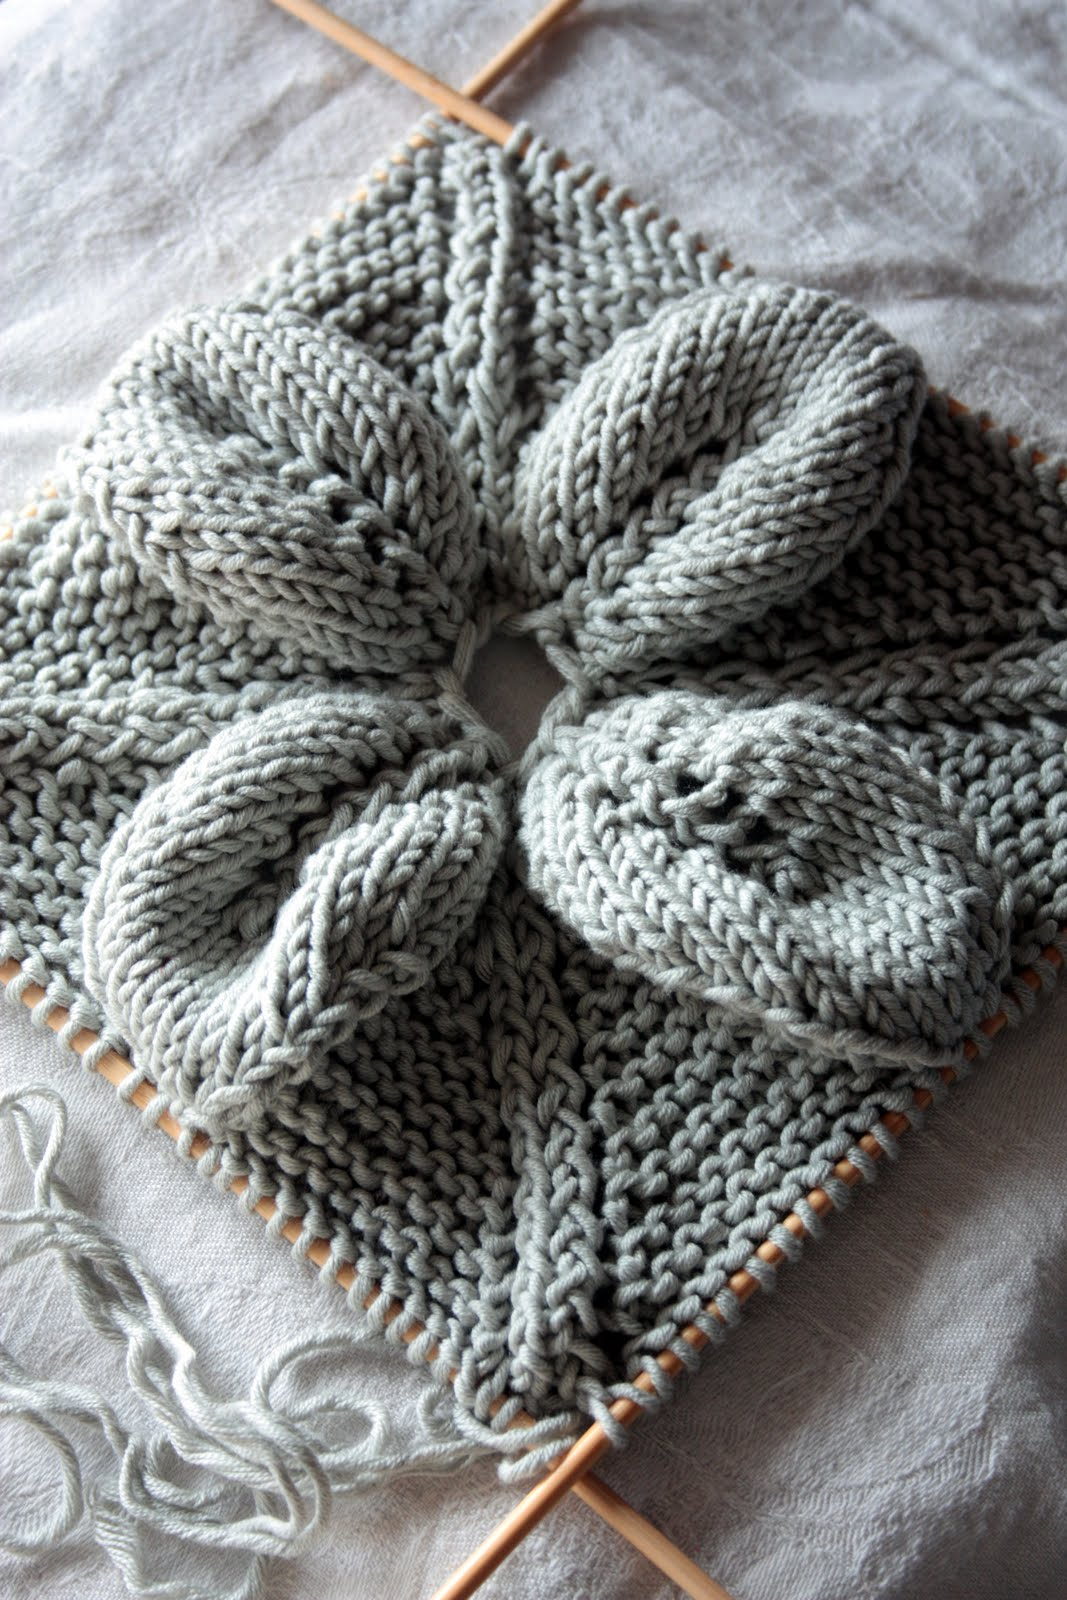 Knitting Pattern Leaf Lace : Needlework inspiration: Knitted leaf & lace squares